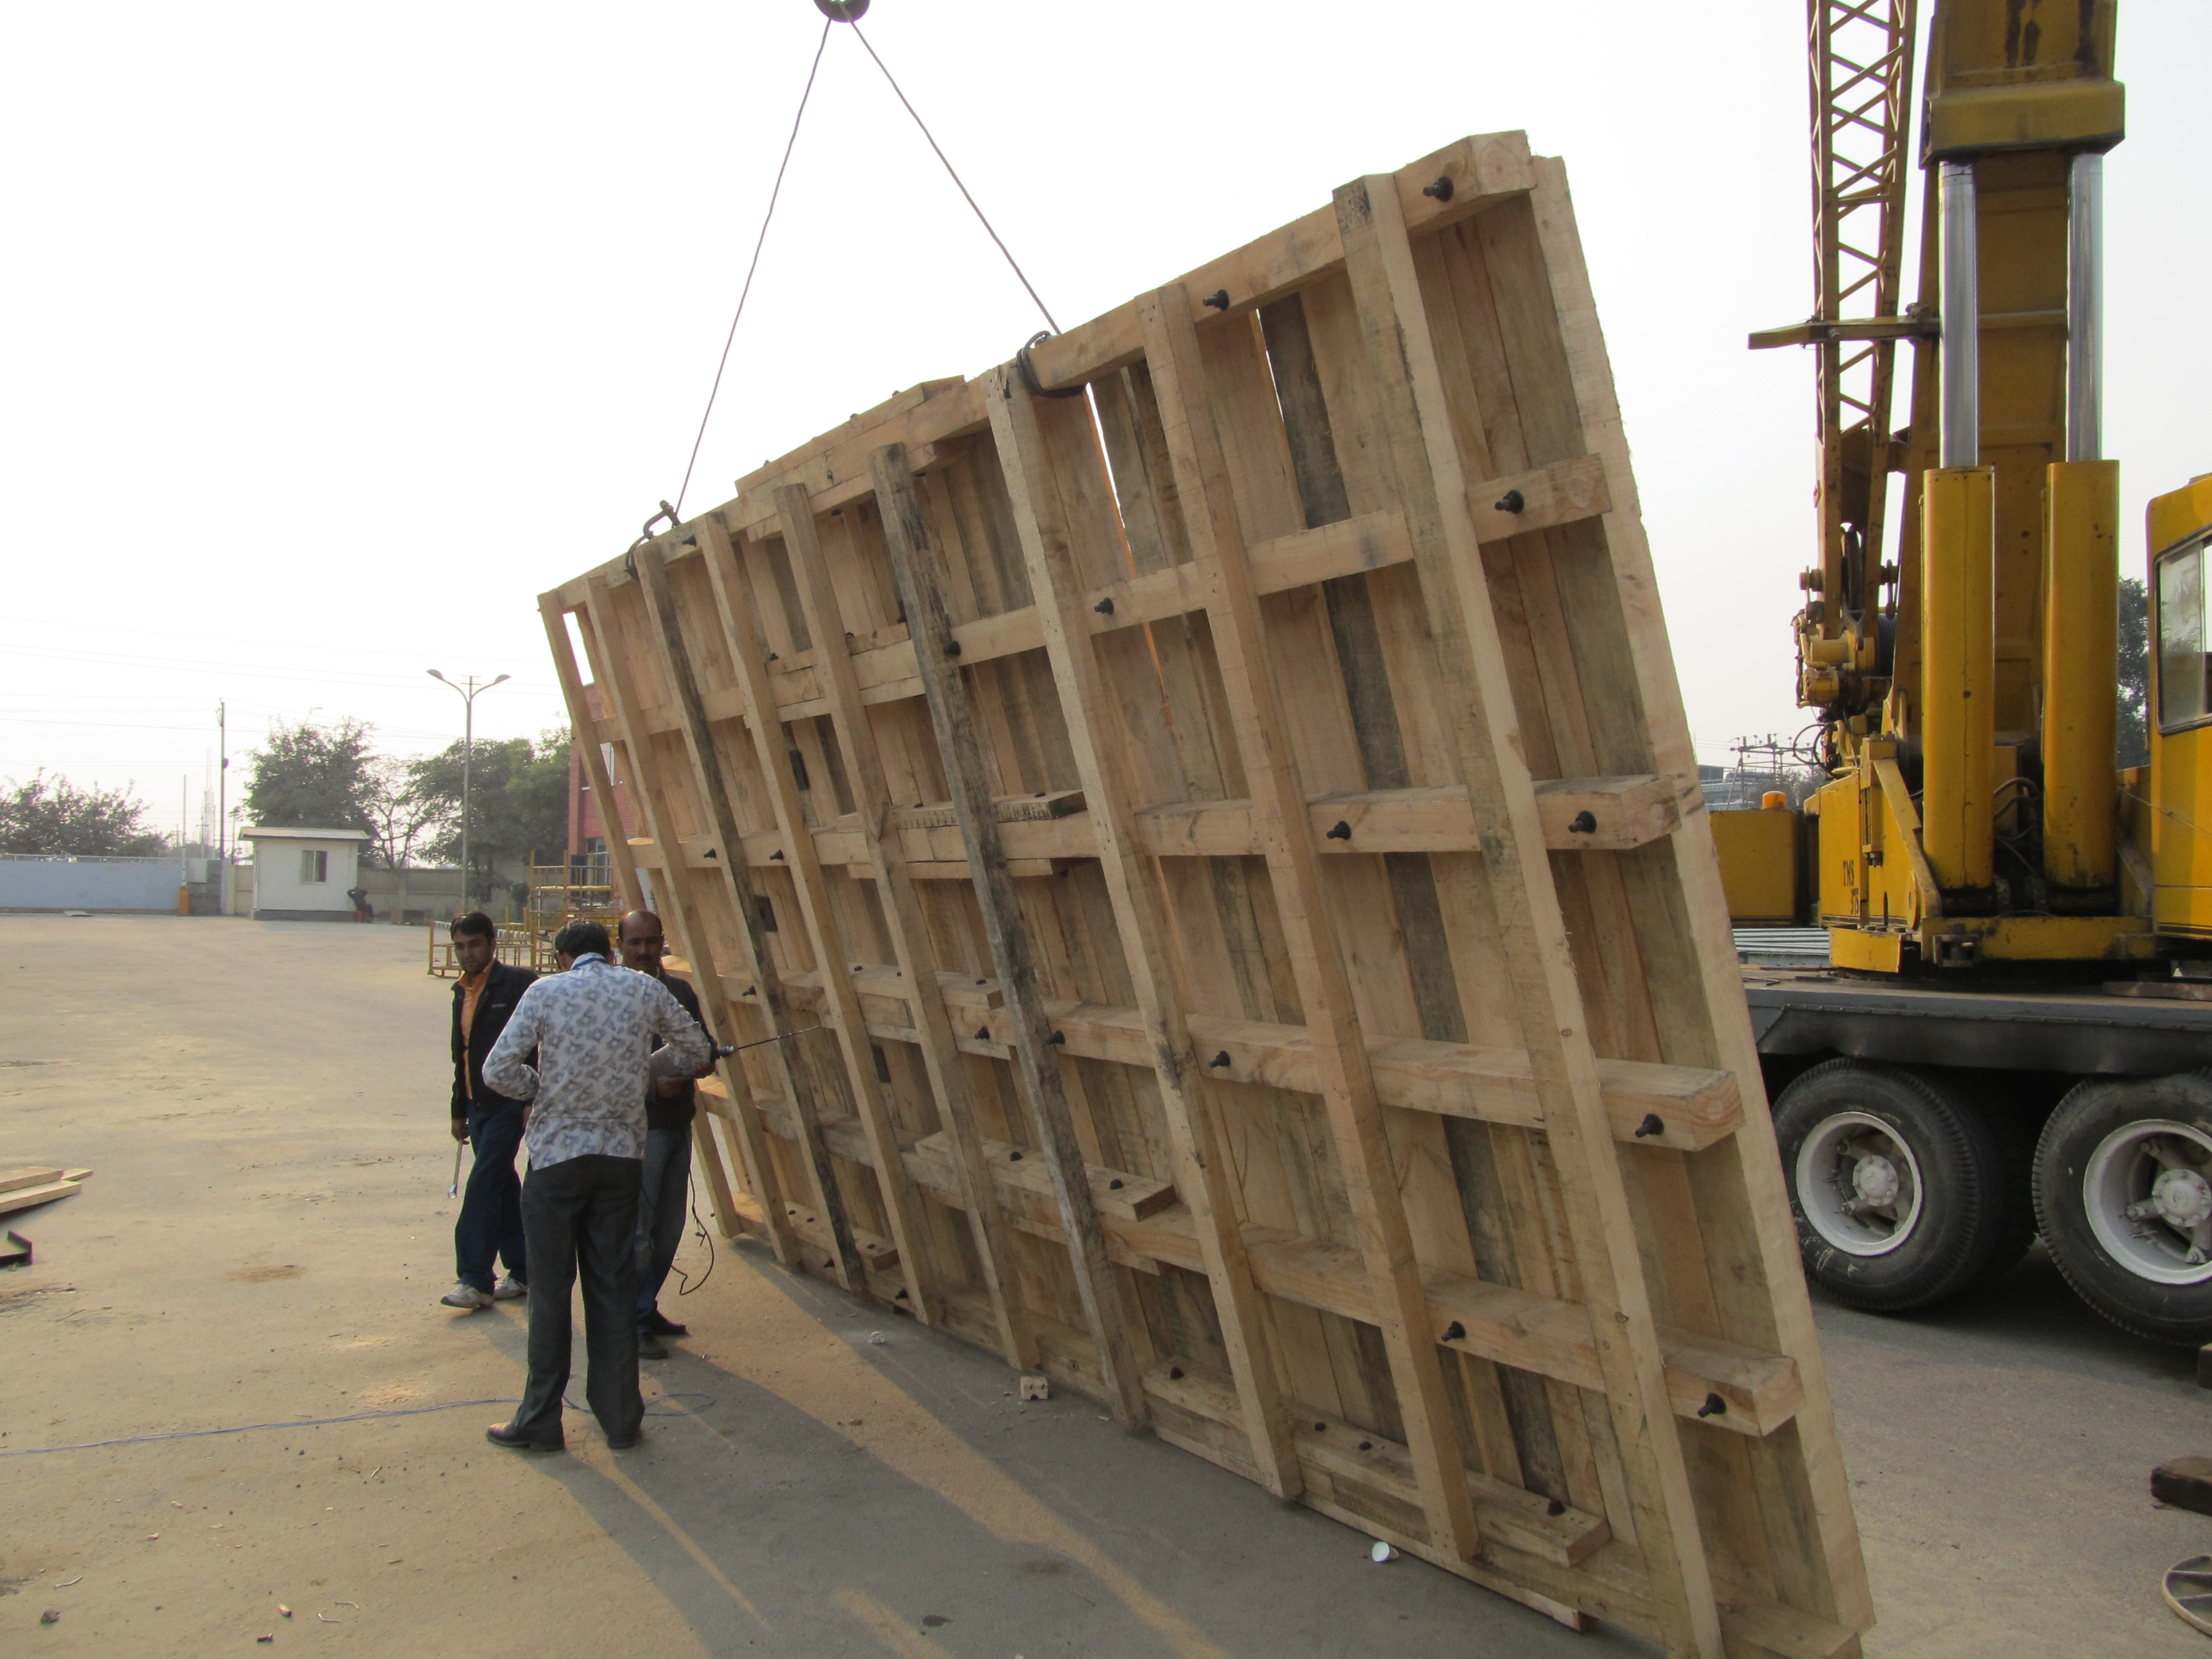 wooden pallet for heavy machine packing